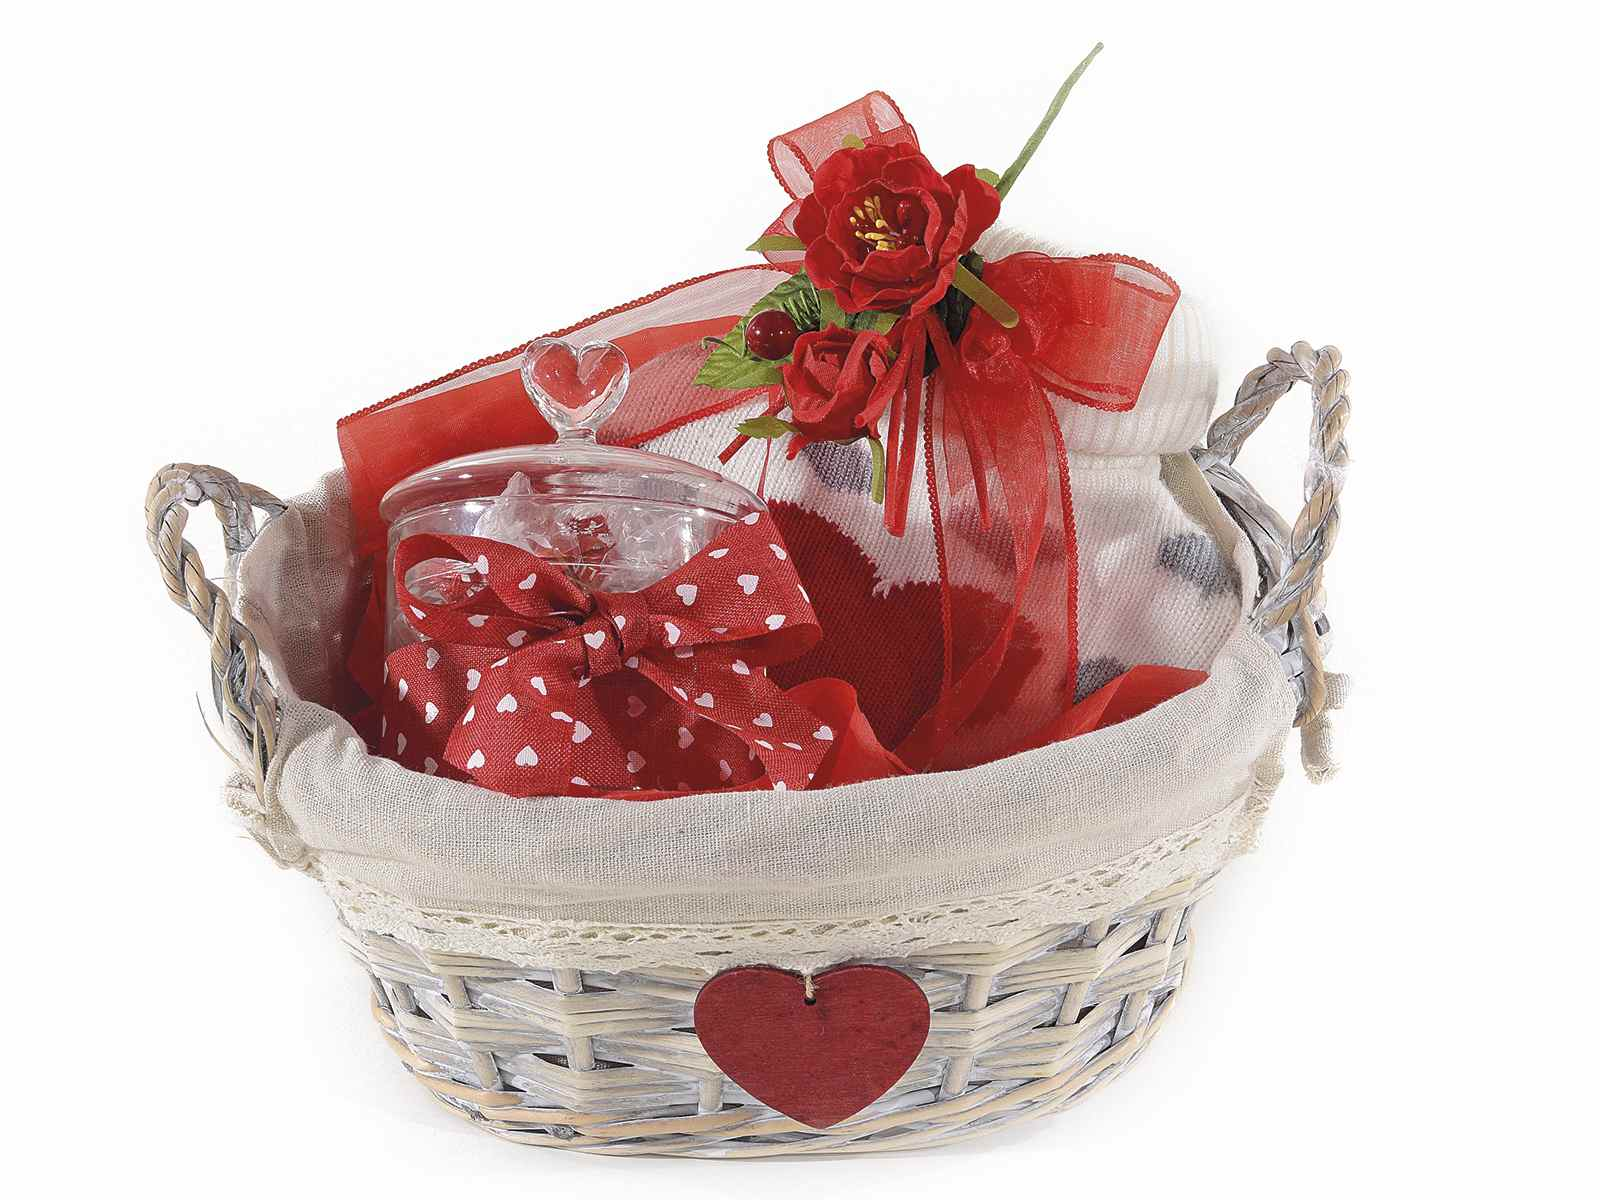 Set 3 Oval Wooden Basket With Handles And Heart Deco 513529